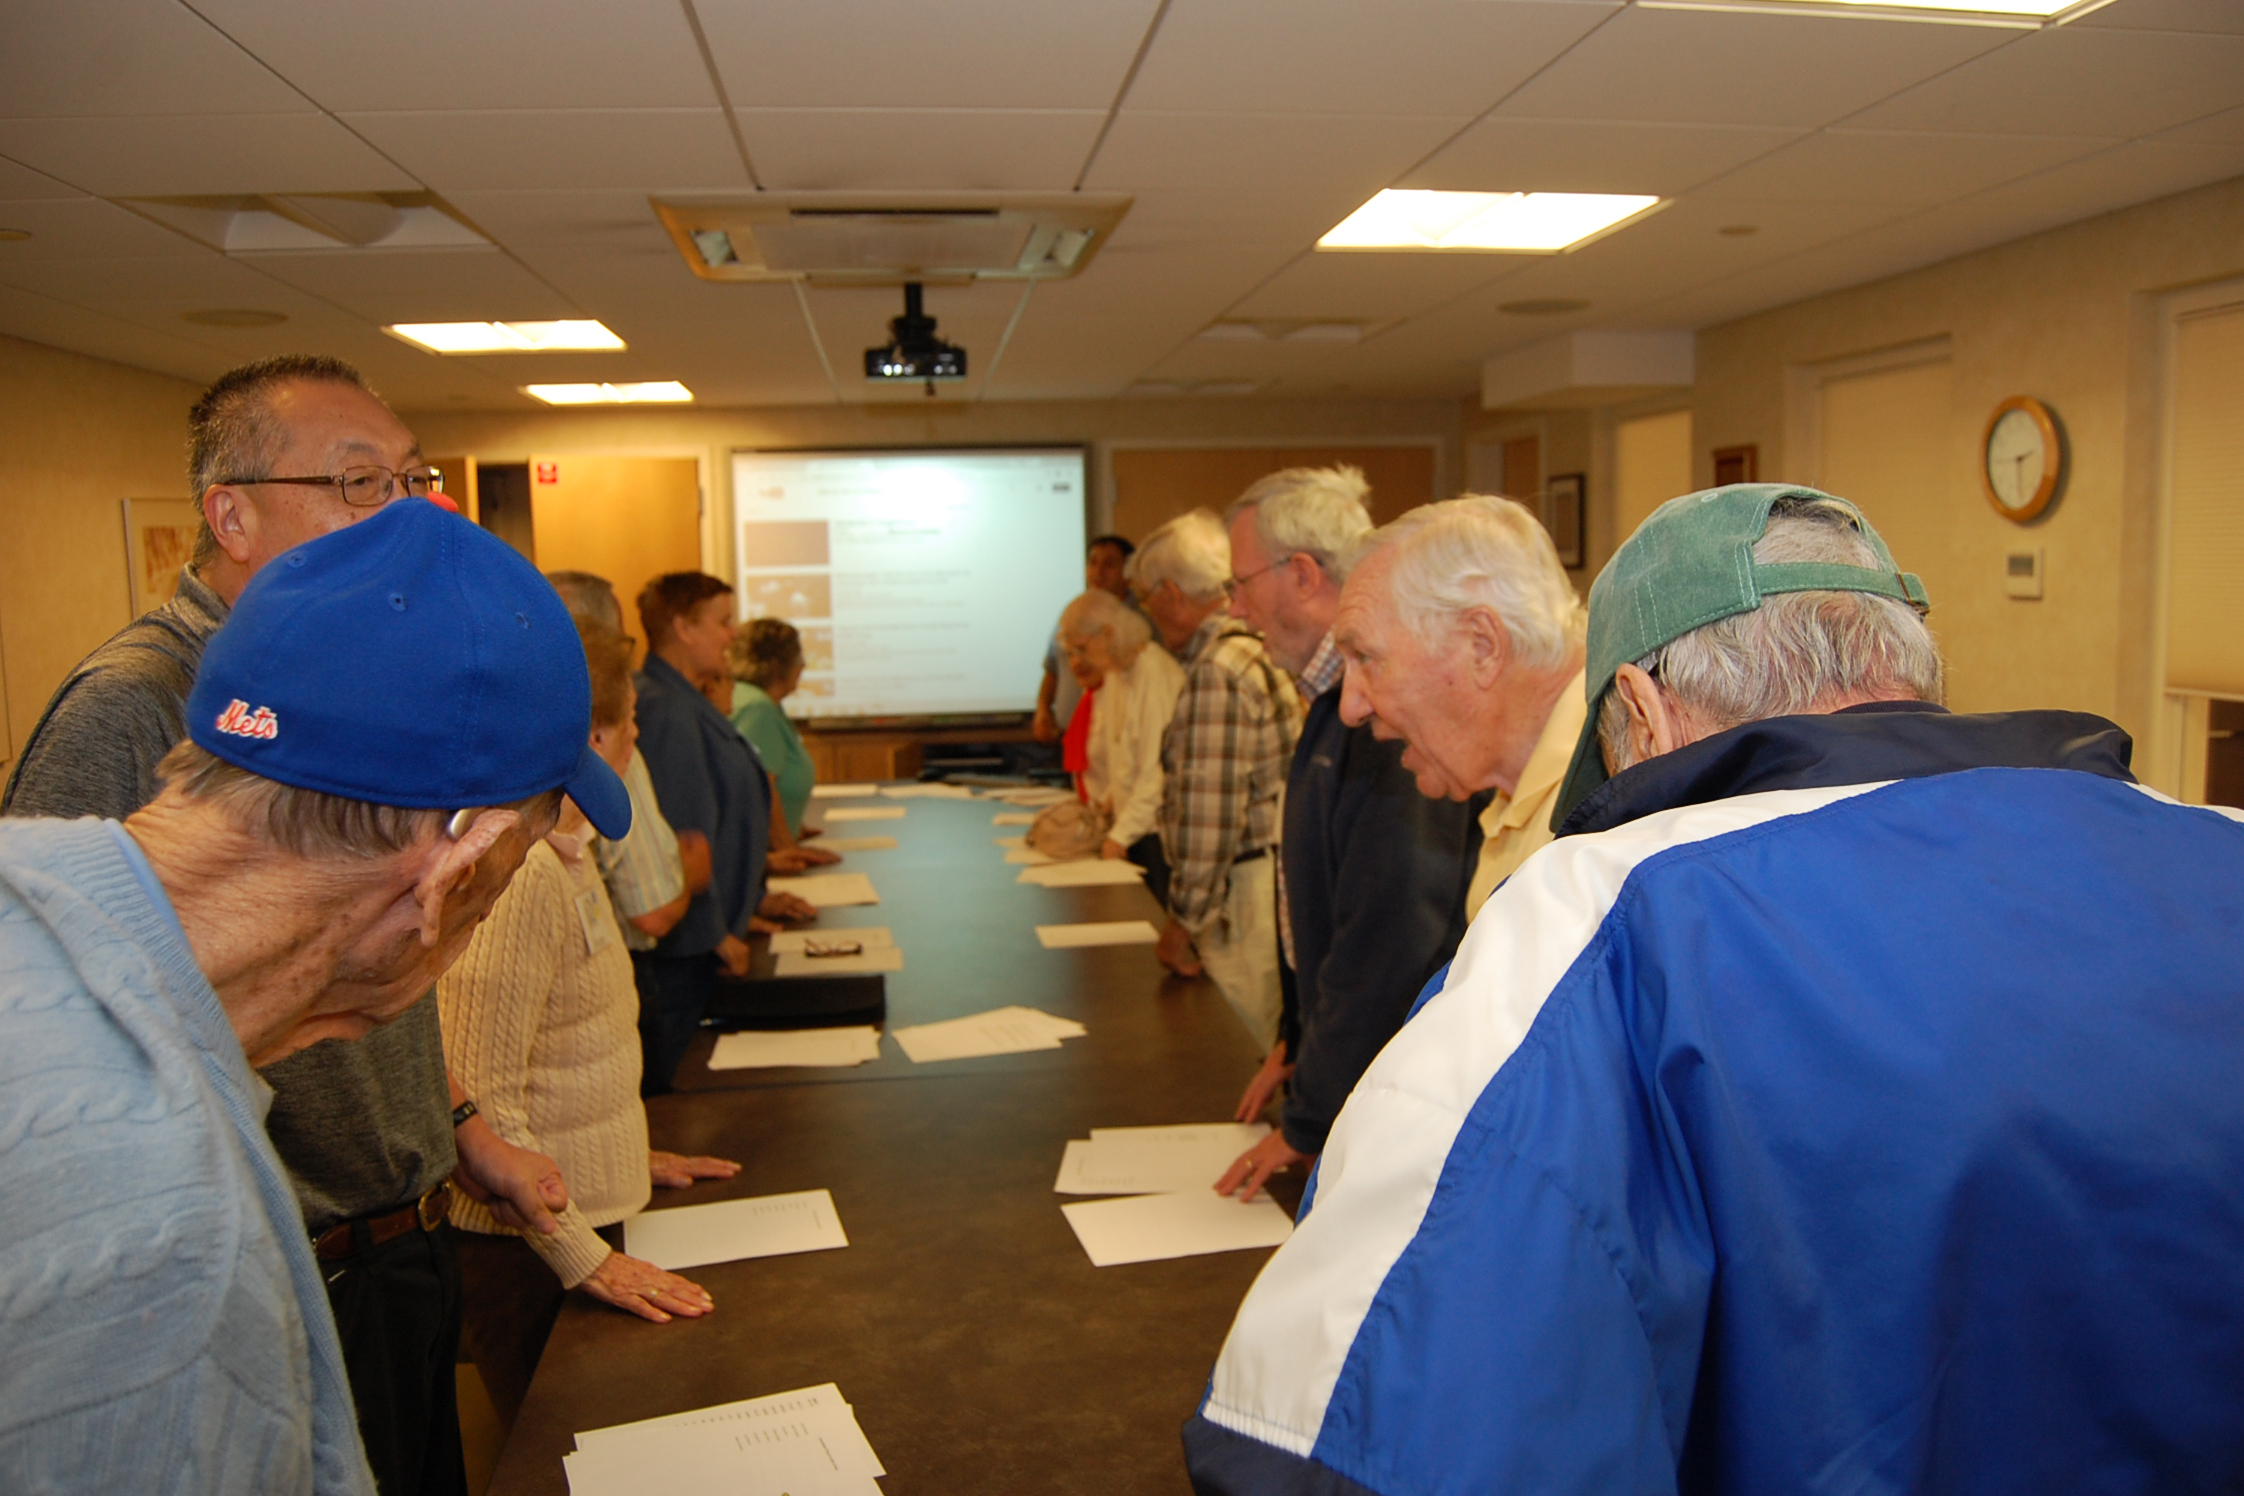 "The ""Seventh Inning Stretch"" at the River House Adult Care Center in Cos Cobb, Connecticut, is when participants in the Baseball Reminiscence Program sing ""Take Me Out to the Ballgame"" during the midway point during their session. (Kenneth Best/UConn Photo)"